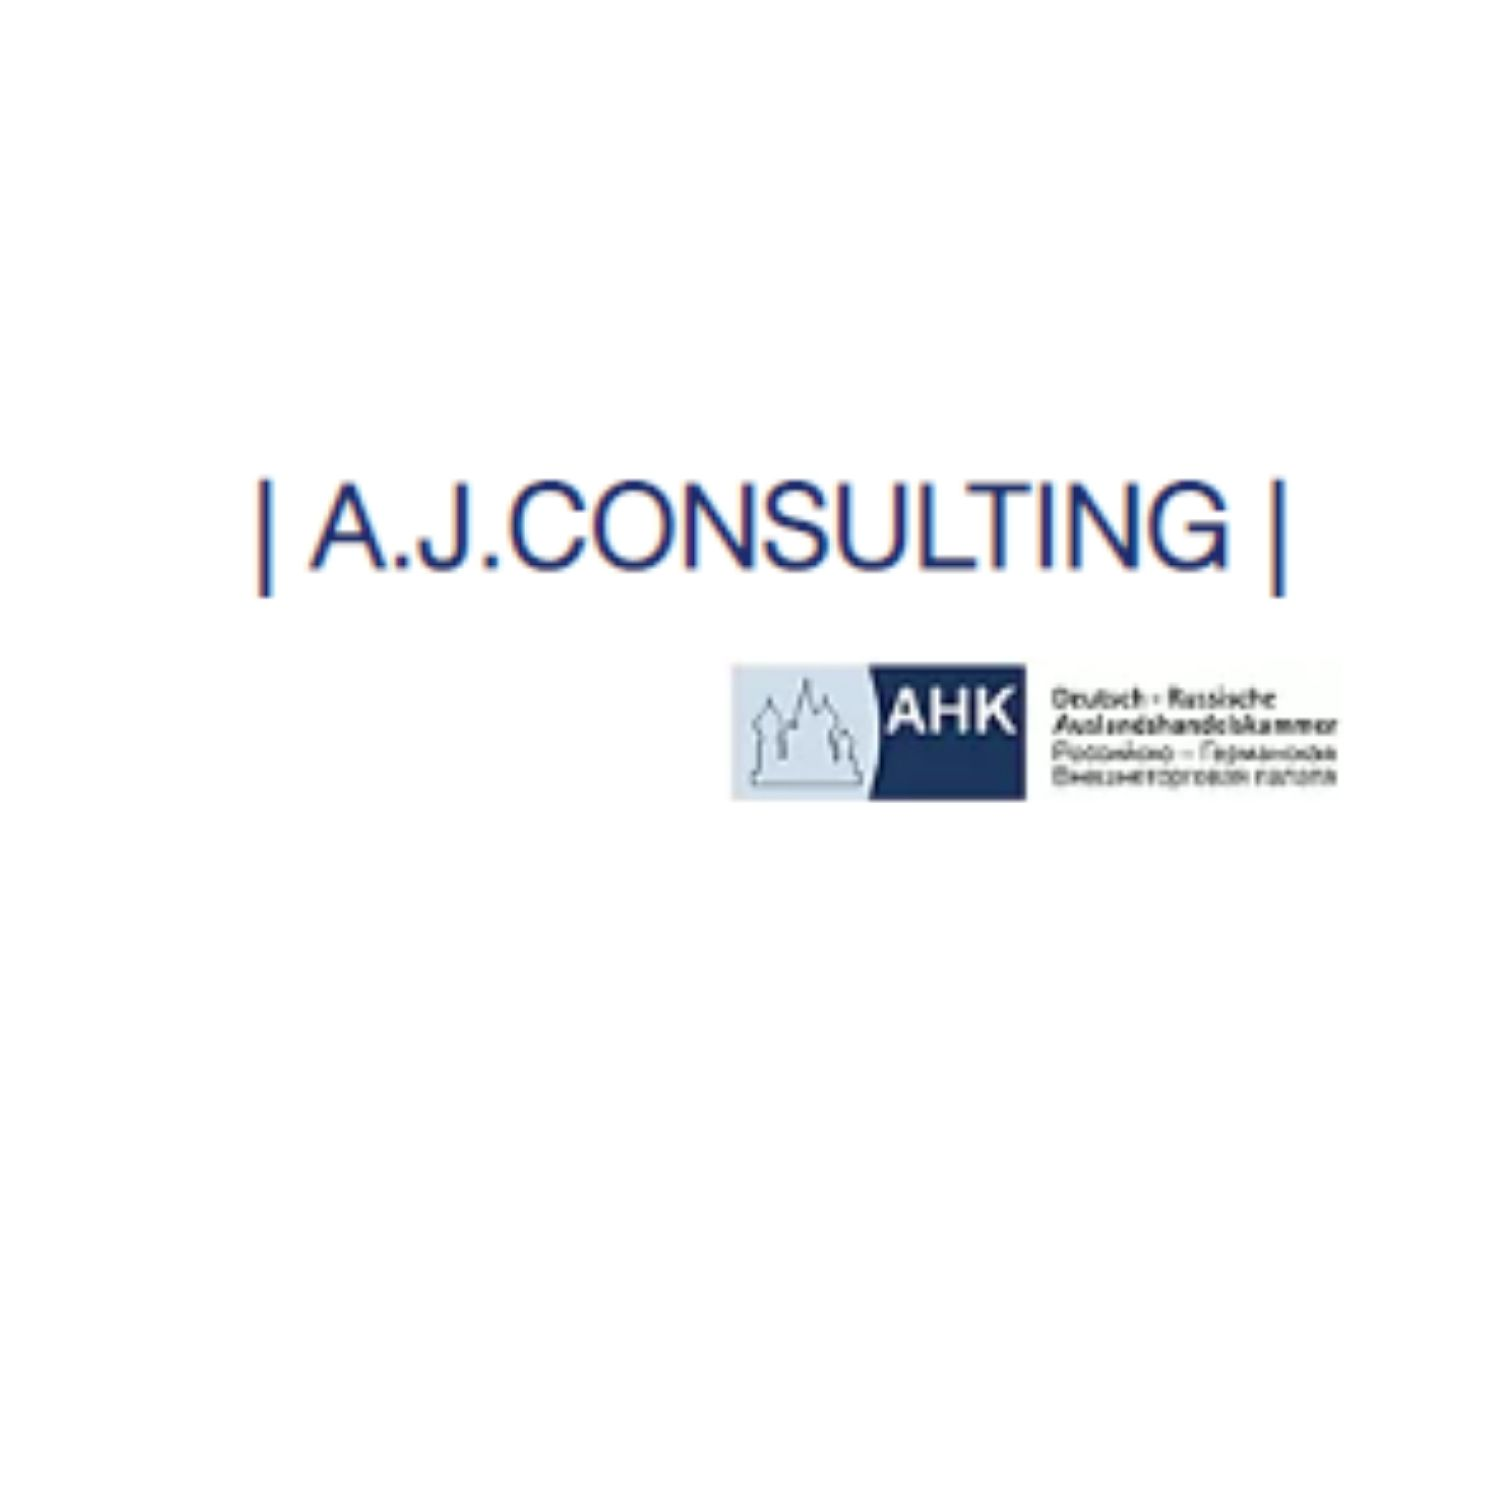 Accounting services in Russia | Tax Consulting in Russia – A.J.CONSULTING